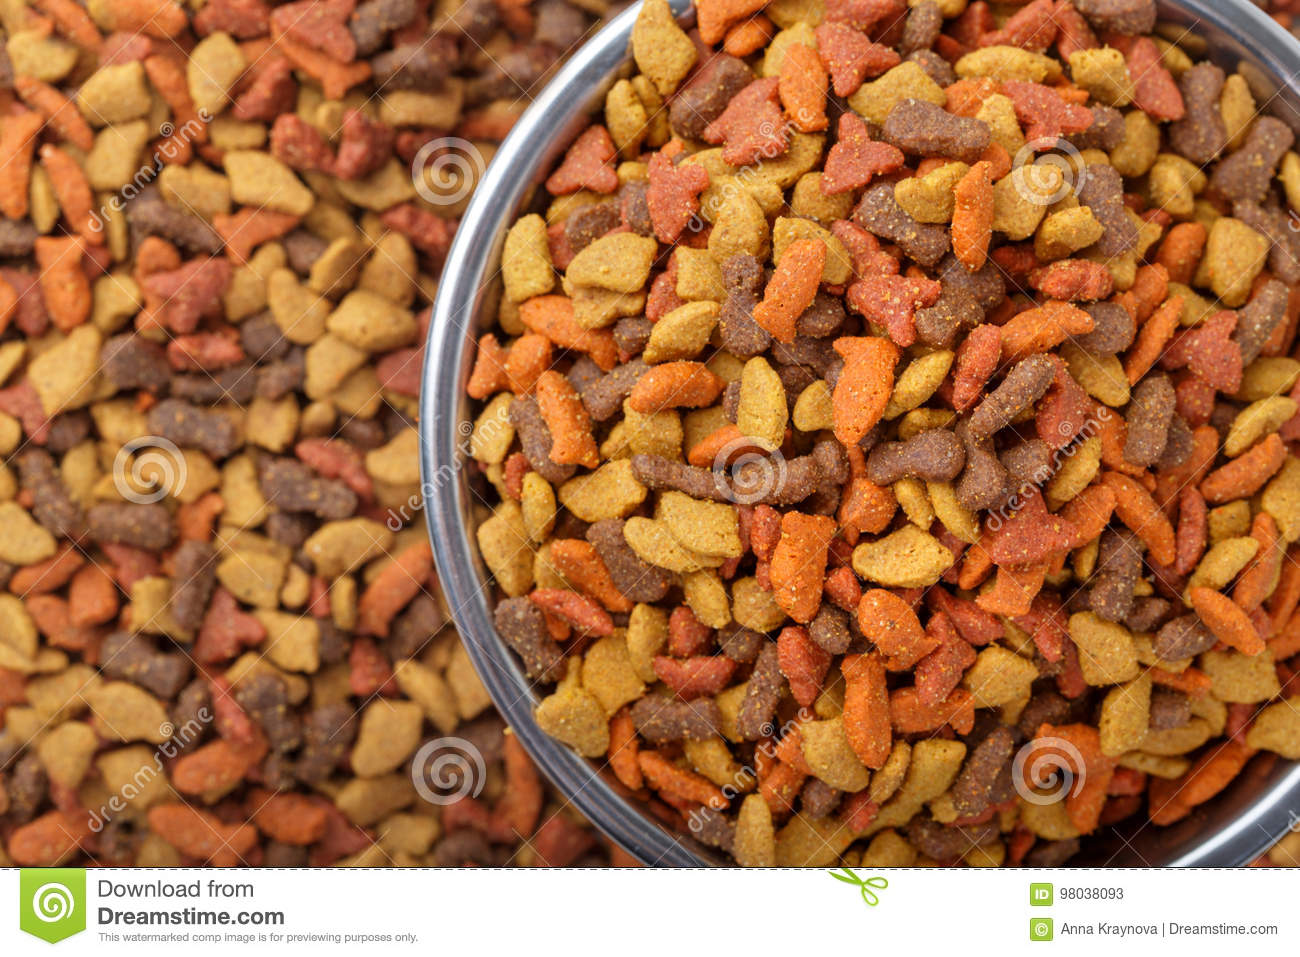 dry cat dog food in granules. Pet treats in metal bowl